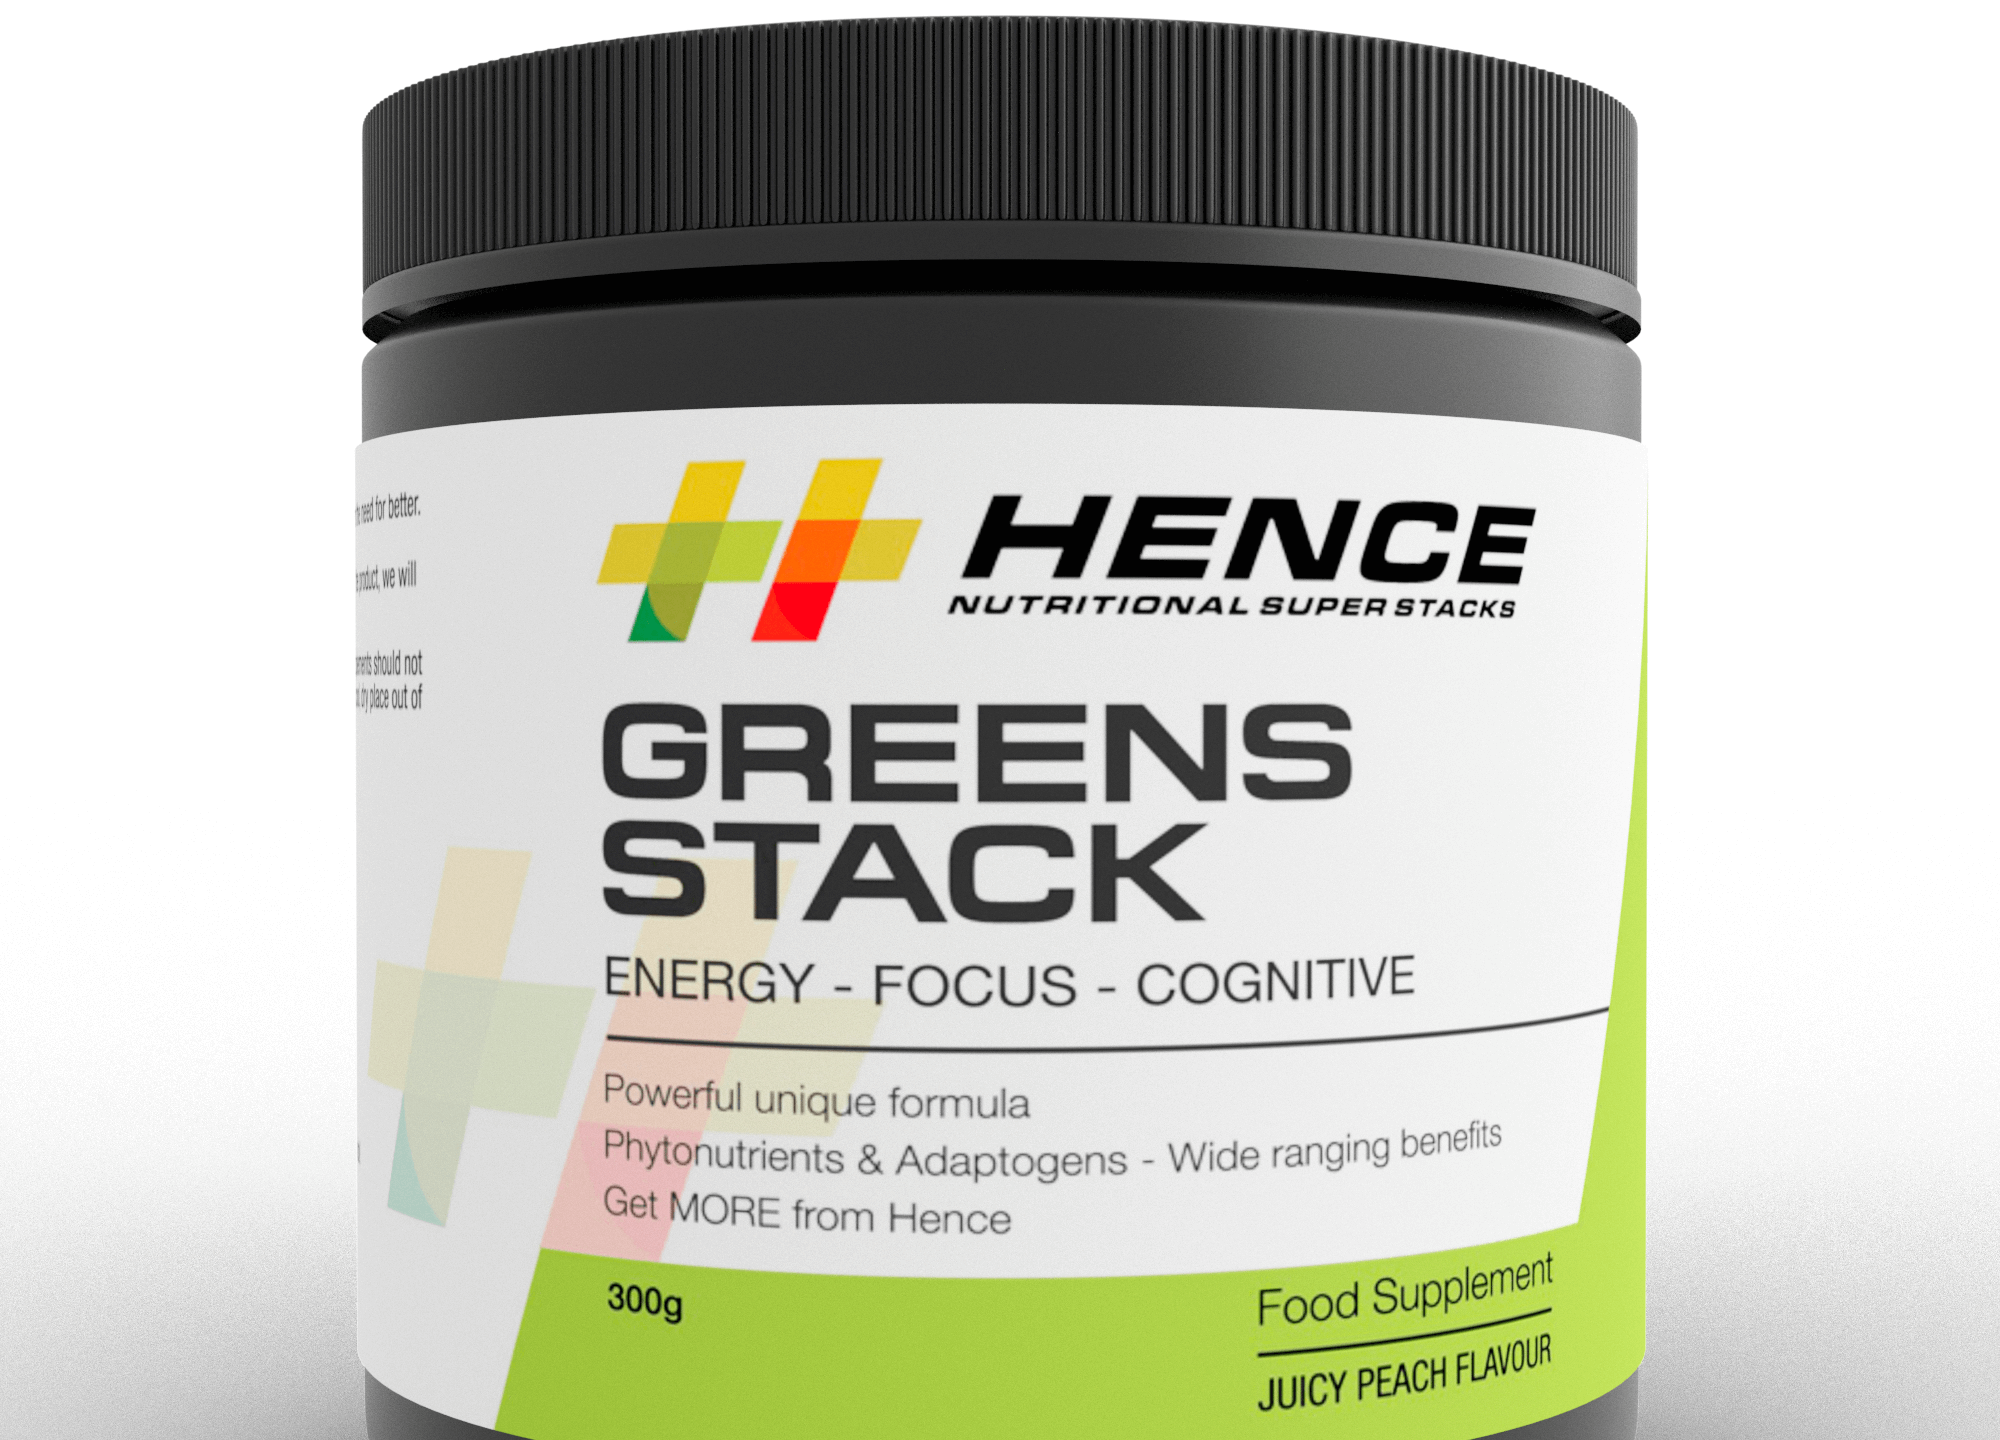 Greens Stack Nutritional Supplement